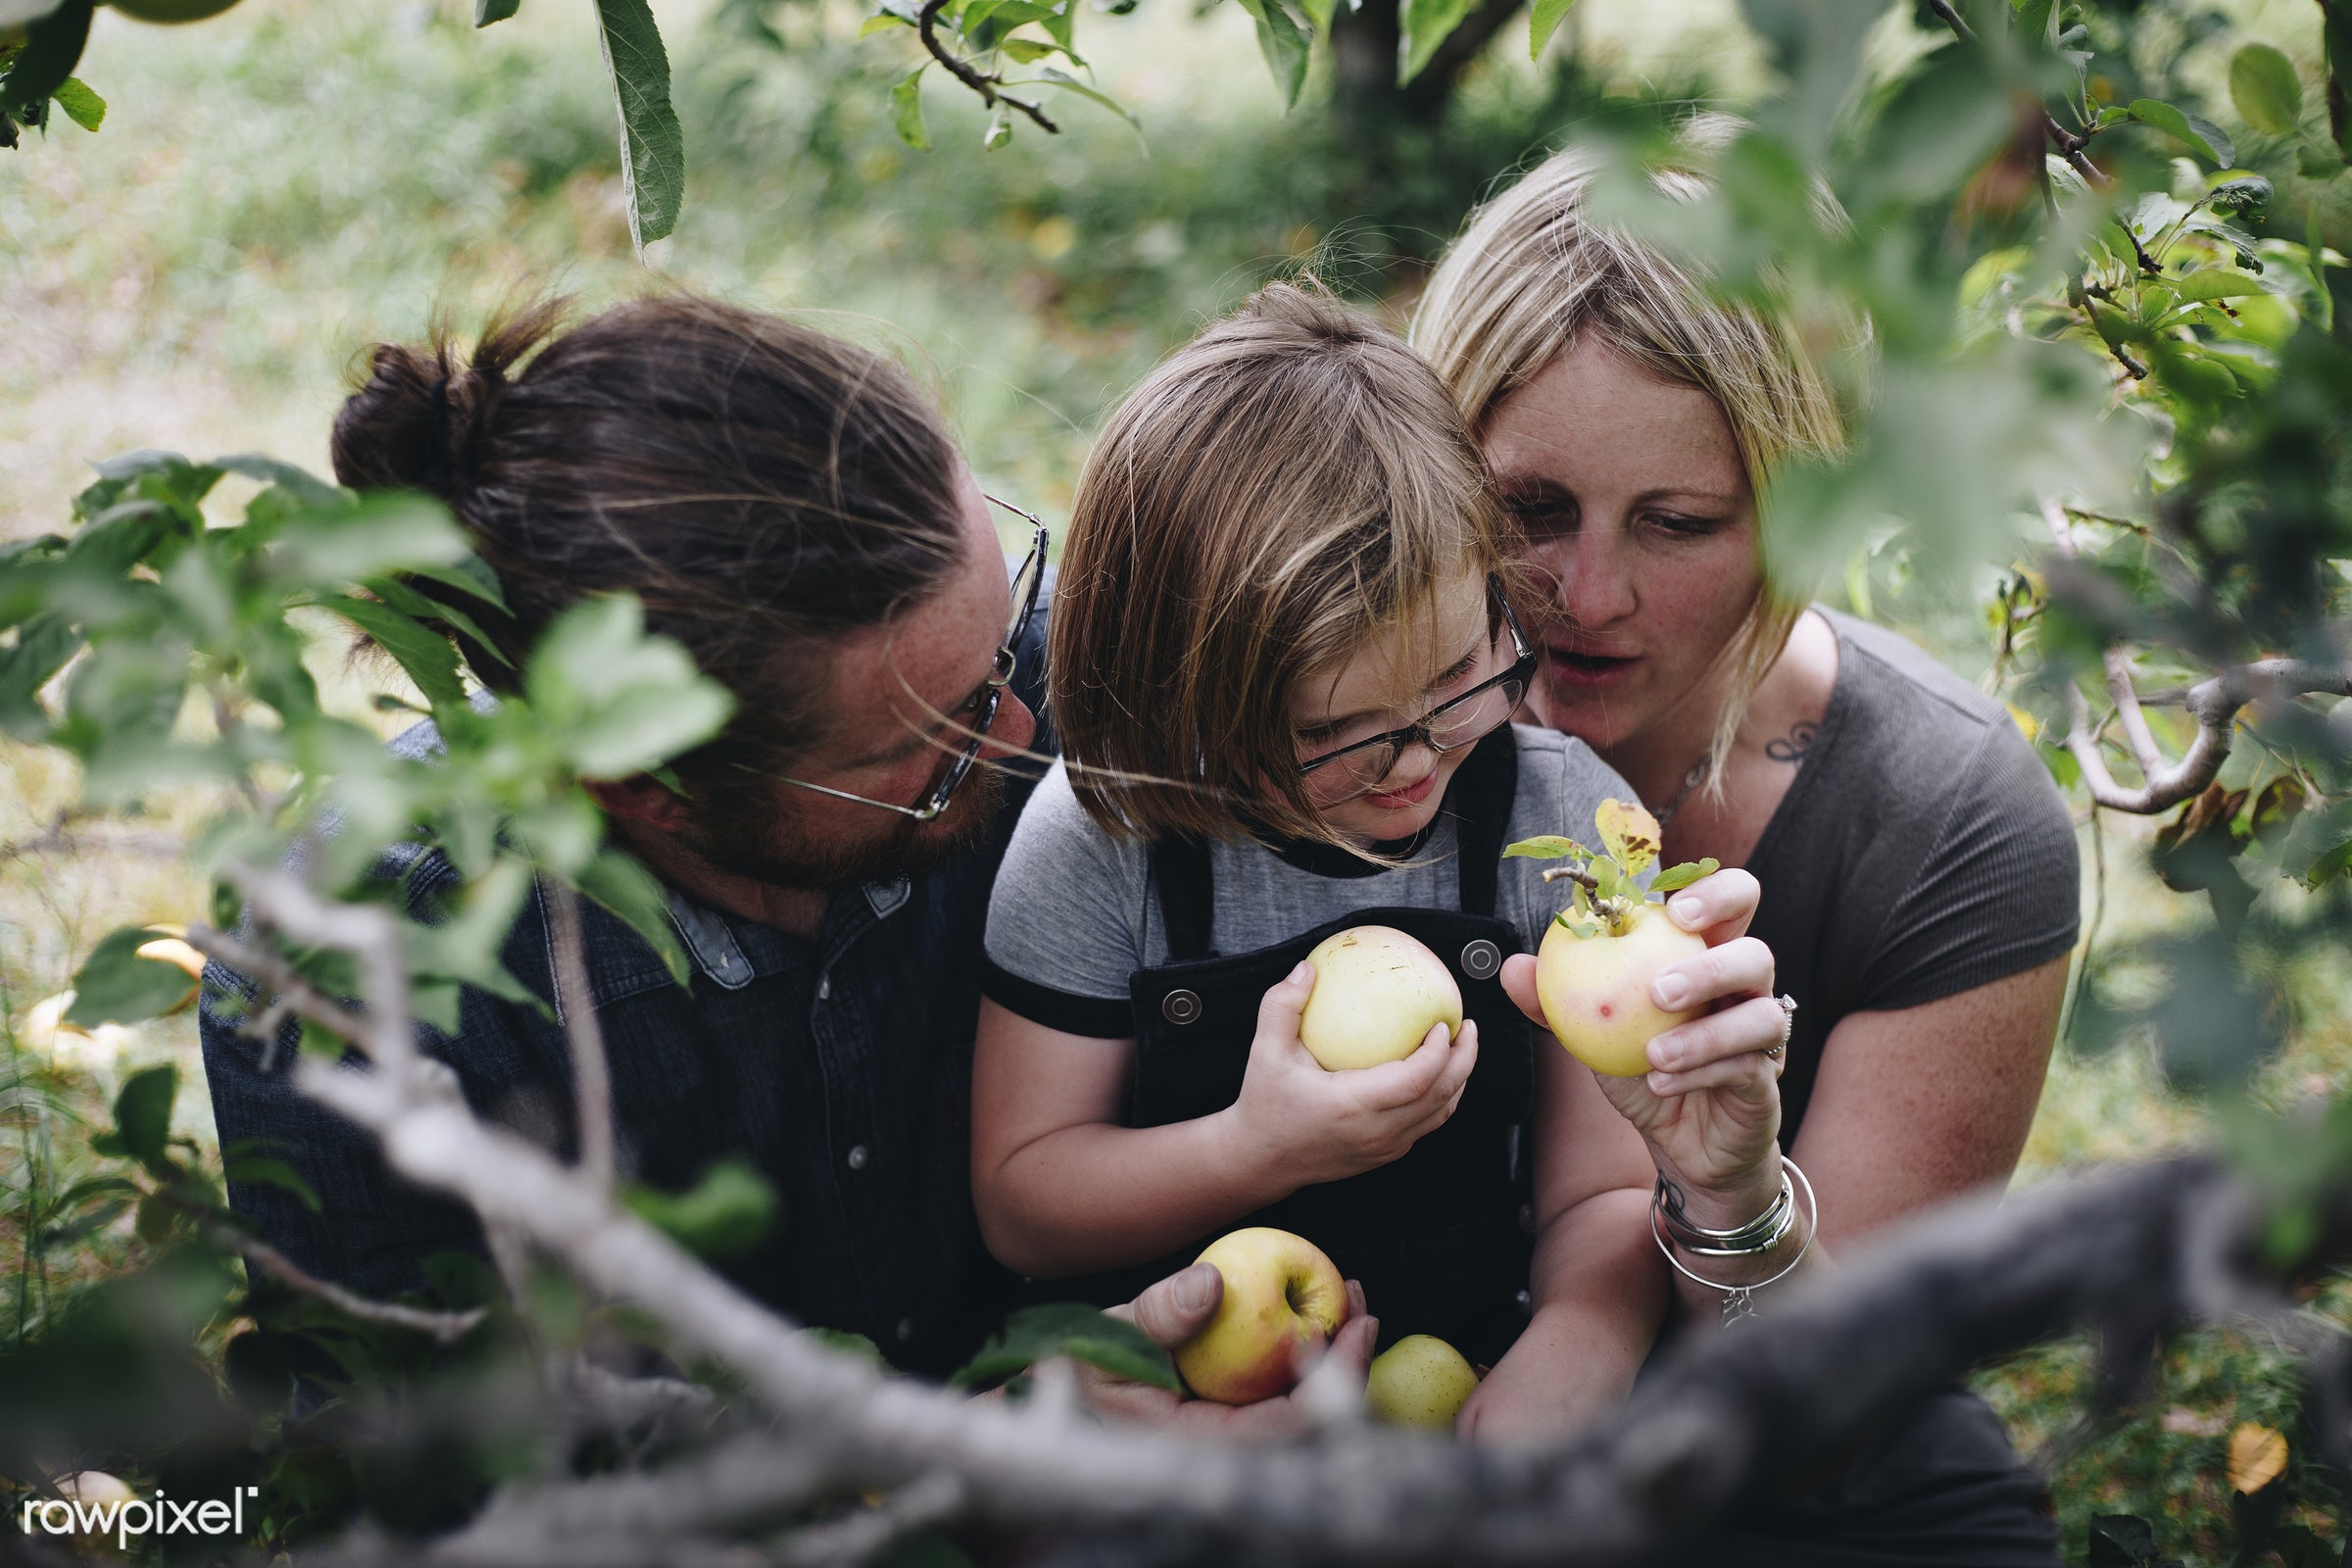 A Caucasian family is spending time at the farm together - apple, america, american, apples, canada, canadian, caucasian,...